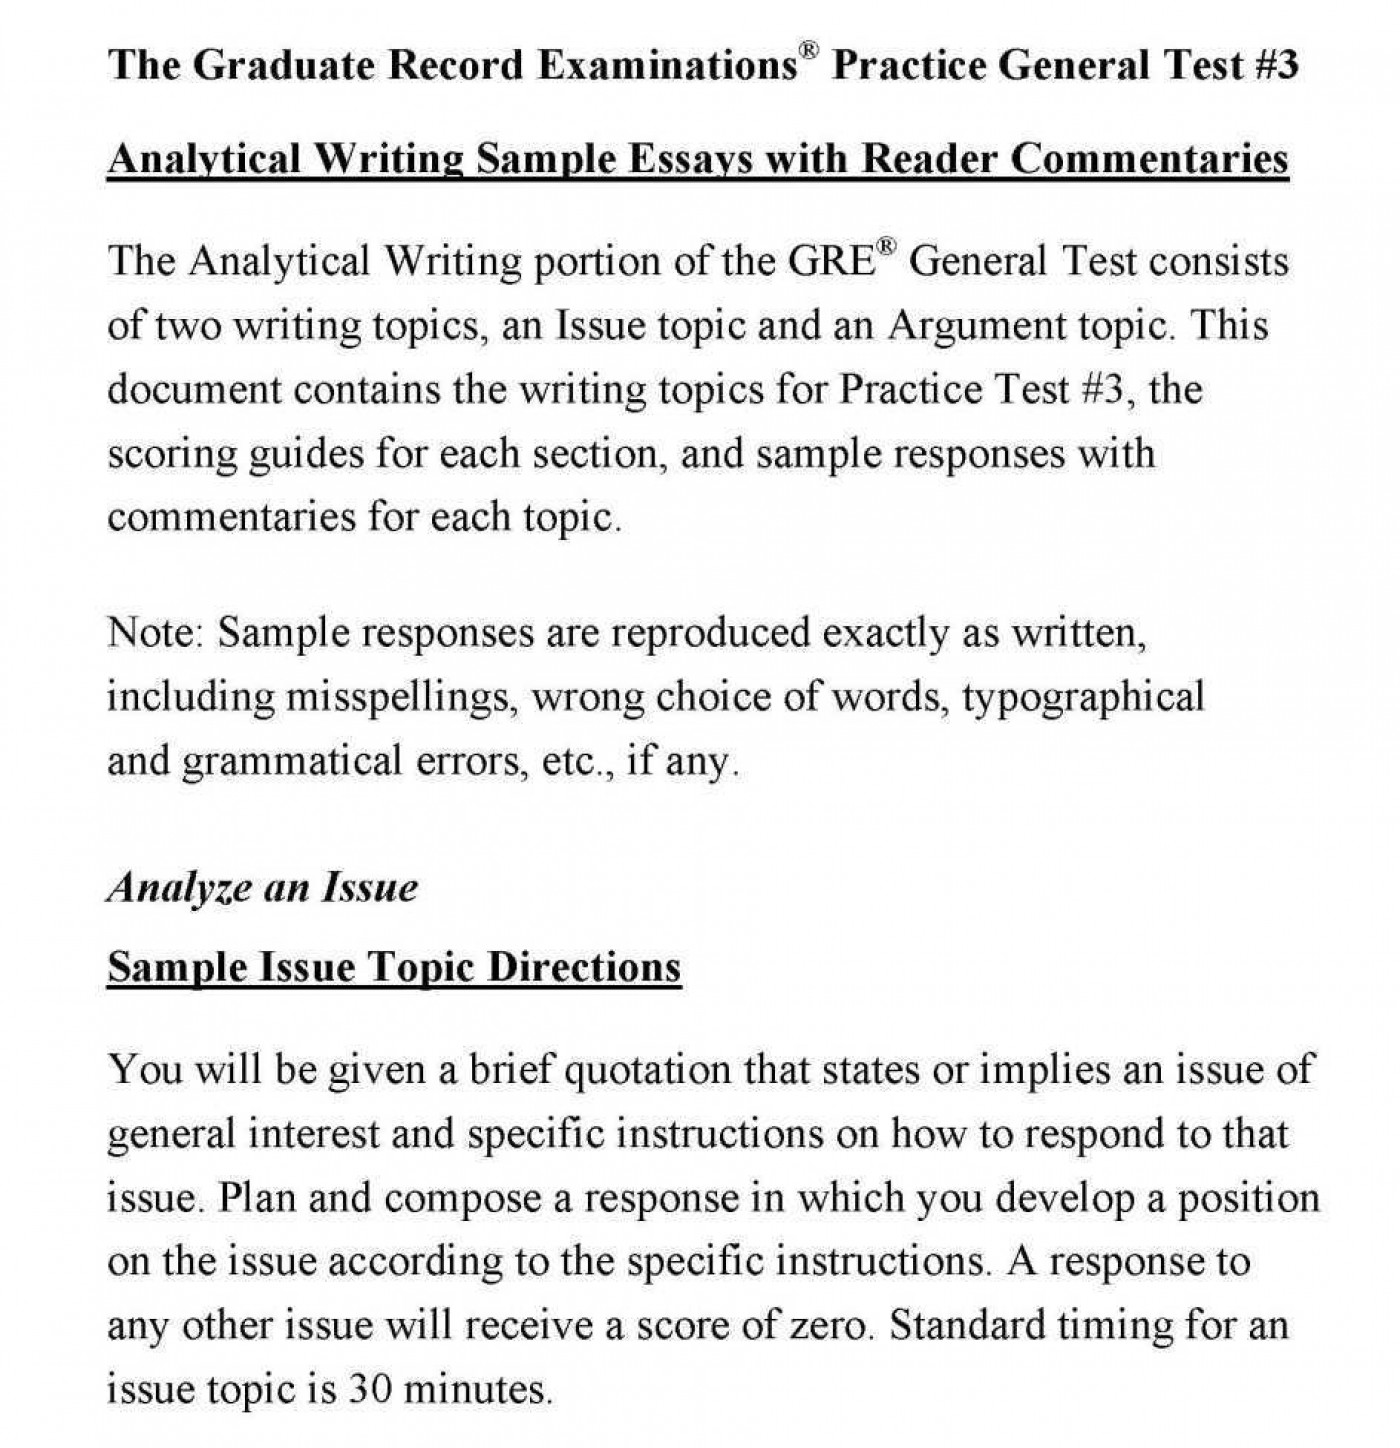 003 Gre Essay Analytical Writing Samples Remarkable Topics Pdf Grader Issue Pool Solutions 1400